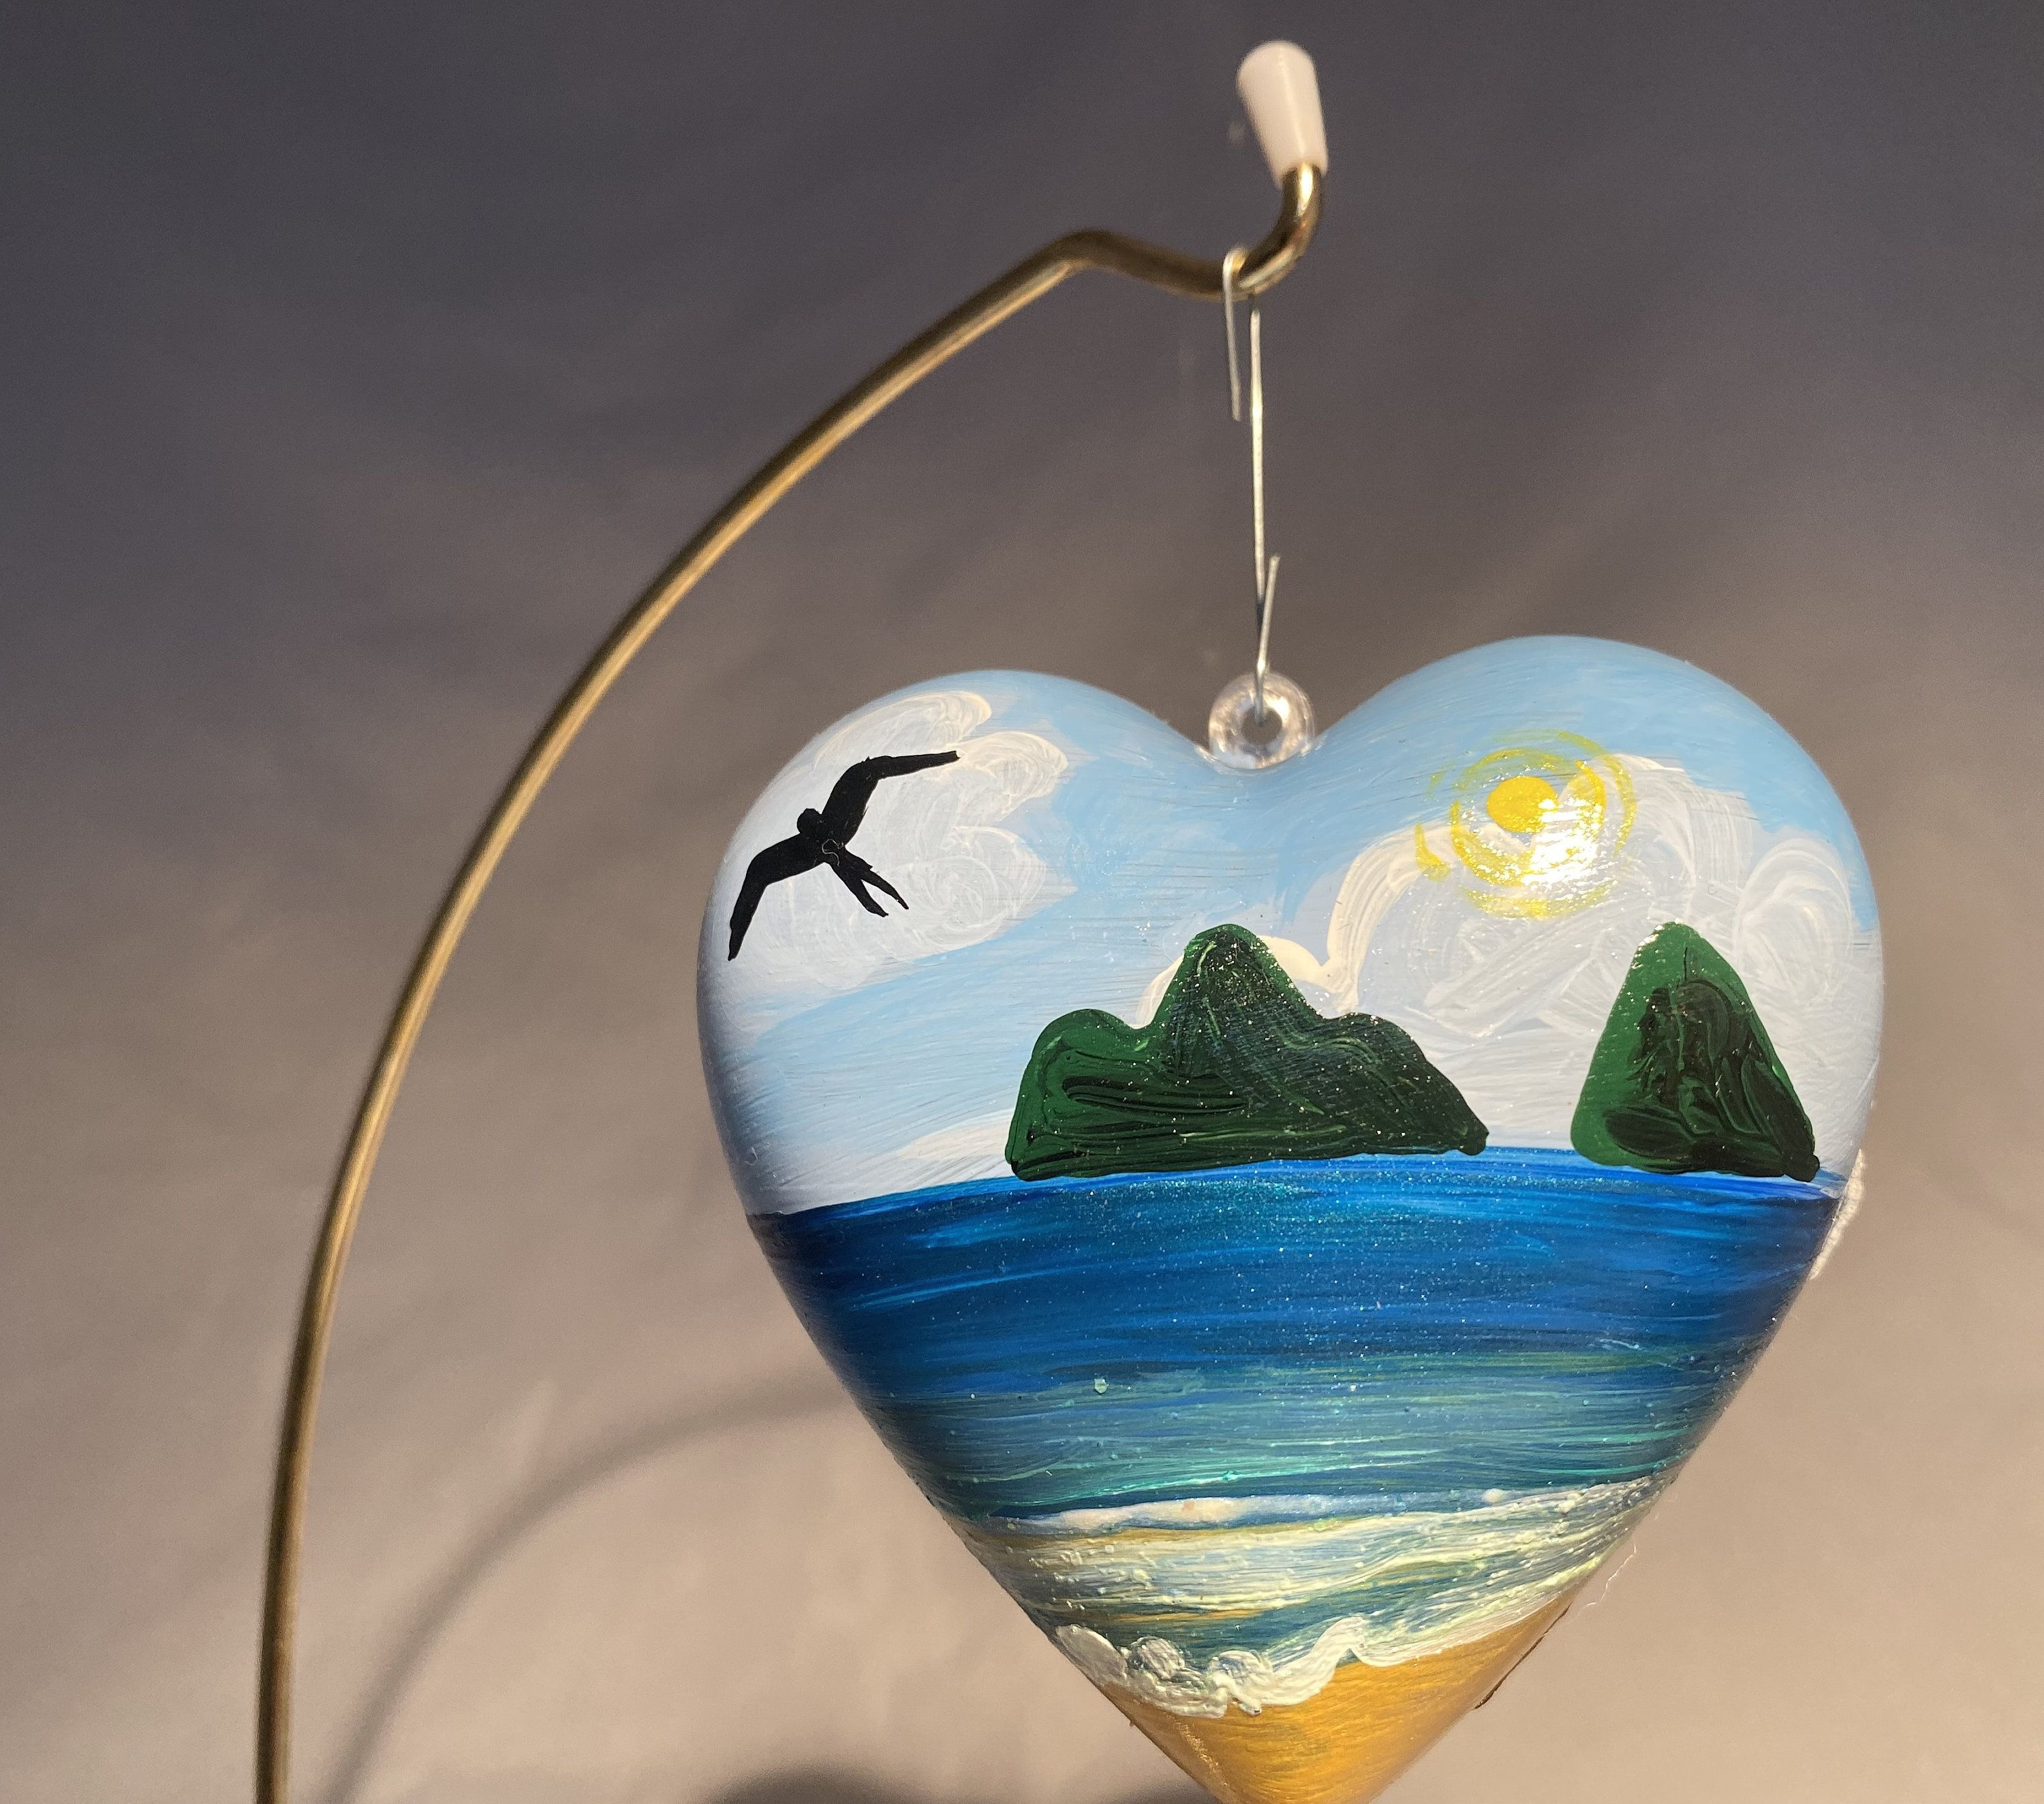 Excited to share this item from my #etsy shop: Handpainted Hawaiian Mokulua Islands on Heart shaped Christmas Ornament #christmas #mokuluaislands #oahu #hawaiiornament #melekalikimaka